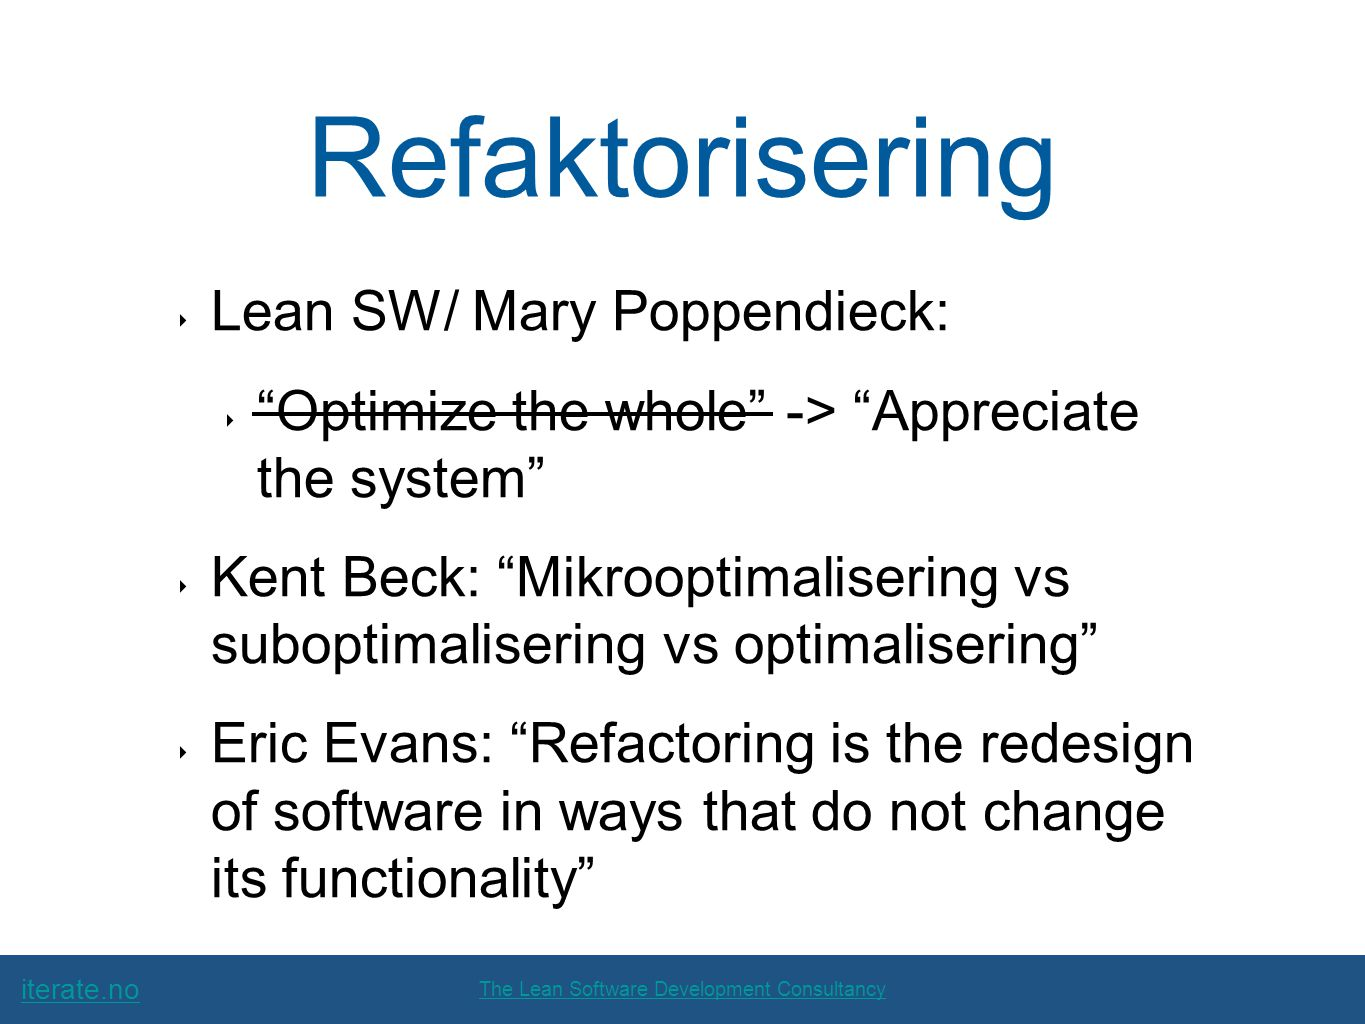 iterate.no The Lean Software Development Consultancy Refaktorisering ‣ Lean SW/ Mary Poppendieck: ‣ Optimize the whole -> Appreciate the system ‣ Kent Beck: Mikrooptimalisering vs suboptimalisering vs optimalisering ‣ Eric Evans: Refactoring is the redesign of software in ways that do not change its functionality